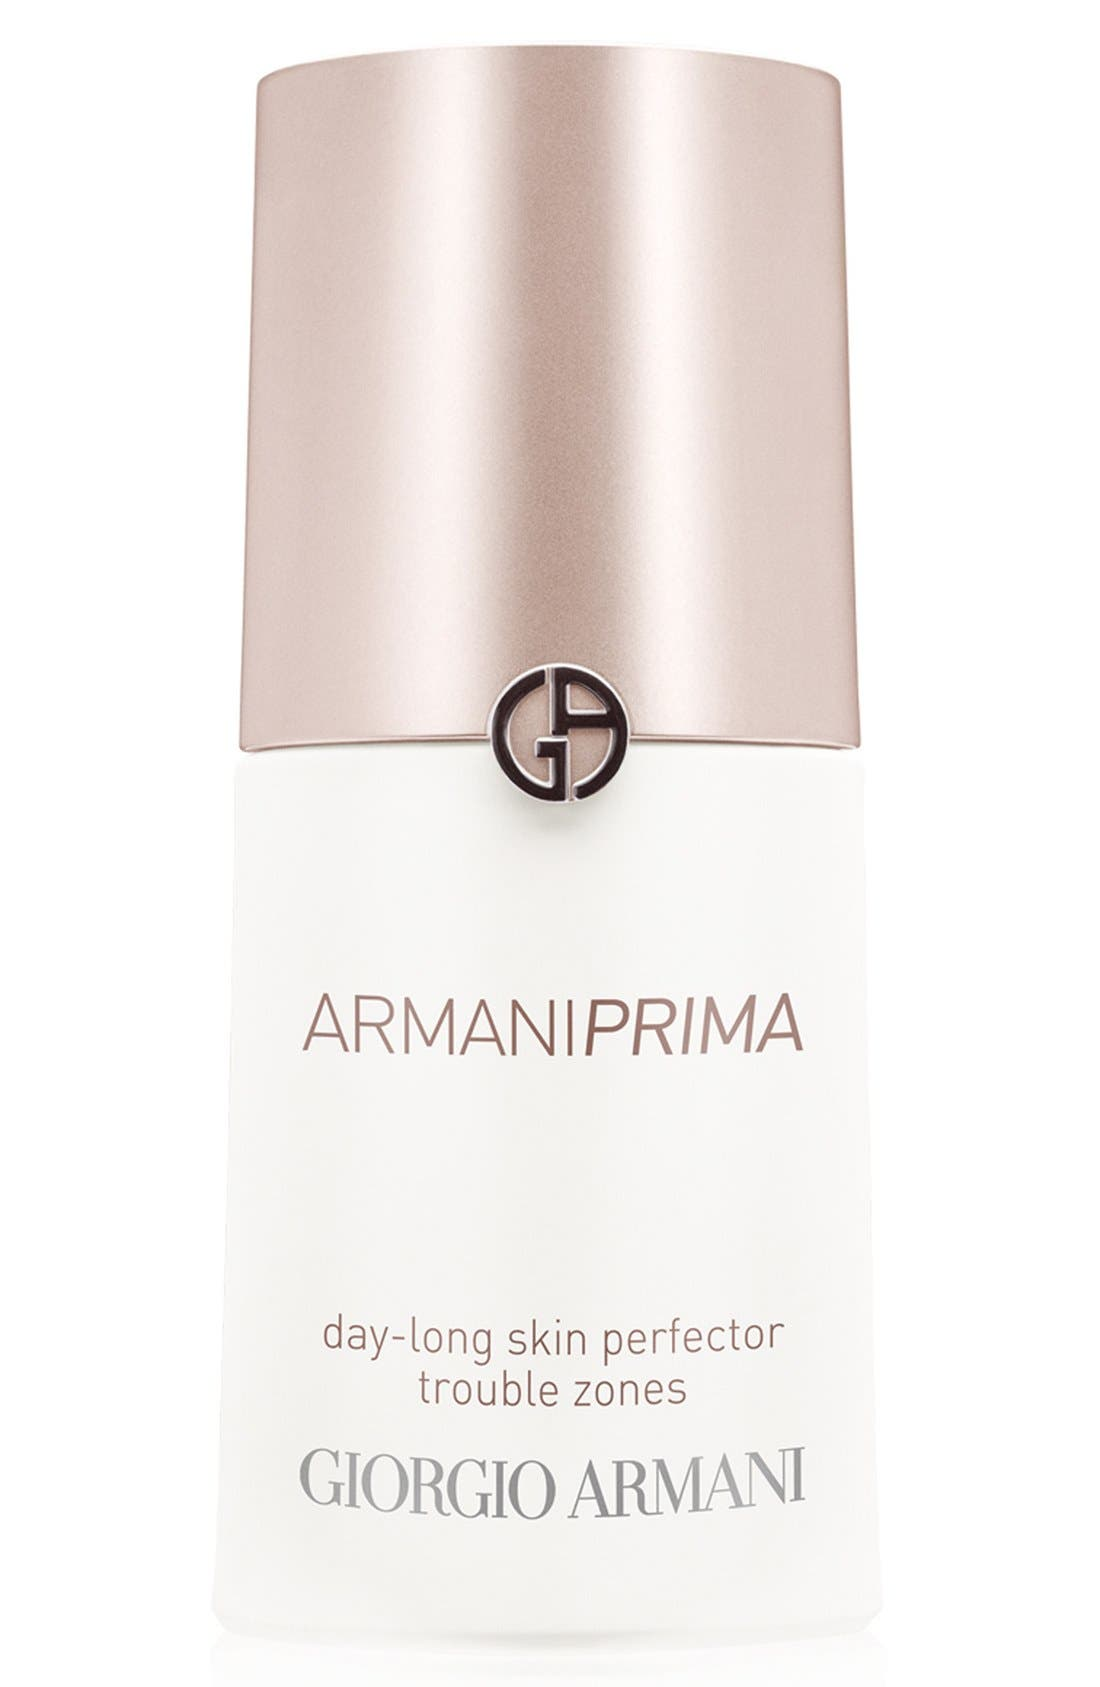 Giorgio Armani 'Prima' Day Long Skin Perfector Trouble Zones